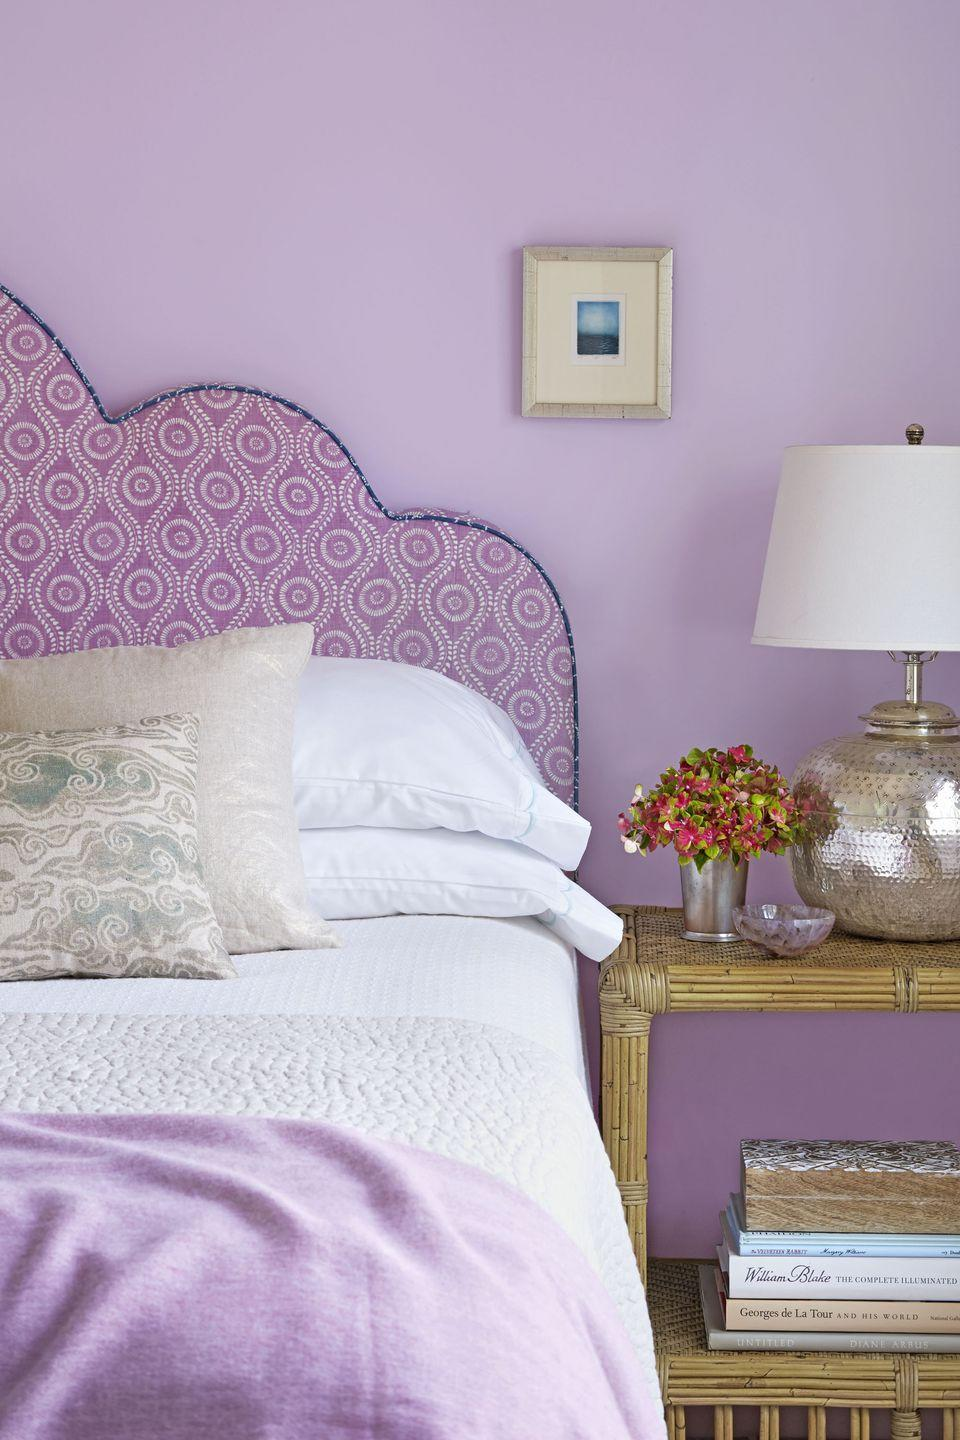 """<p>Did you know purple is the color of royalty? It is. Make your small bedroom feel downright palatial with lilac paints like <a href=""""https://www.benjaminmoore.com/en-us/color-overview/find-your-color/color/1403/french-lilac"""" rel=""""nofollow noopener"""" target=""""_blank"""" data-ylk=""""slk:French Lilac by Benjamin Moore"""" class=""""link rapid-noclick-resp"""">French Lilac by Benjamin Moore</a>, <a href=""""https://www.sherwin-williams.com/homeowners/color/find-and-explore-colors/paint-colors-by-family/SW6836-novel-lilac"""" rel=""""nofollow noopener"""" target=""""_blank"""" data-ylk=""""slk:Novel Lilac by Sherwin-Williams"""" class=""""link rapid-noclick-resp"""">Novel Lilac by Sherwin-Williams</a>, or <a href=""""https://www.behr.com/consumer/ColorDetailView/P560-1"""" rel=""""nofollow noopener"""" target=""""_blank"""" data-ylk=""""slk:Blissful by Behr"""" class=""""link rapid-noclick-resp"""">Blissful by Behr</a>. After all, you deserve to live (and sleep!) like a queen. </p>"""